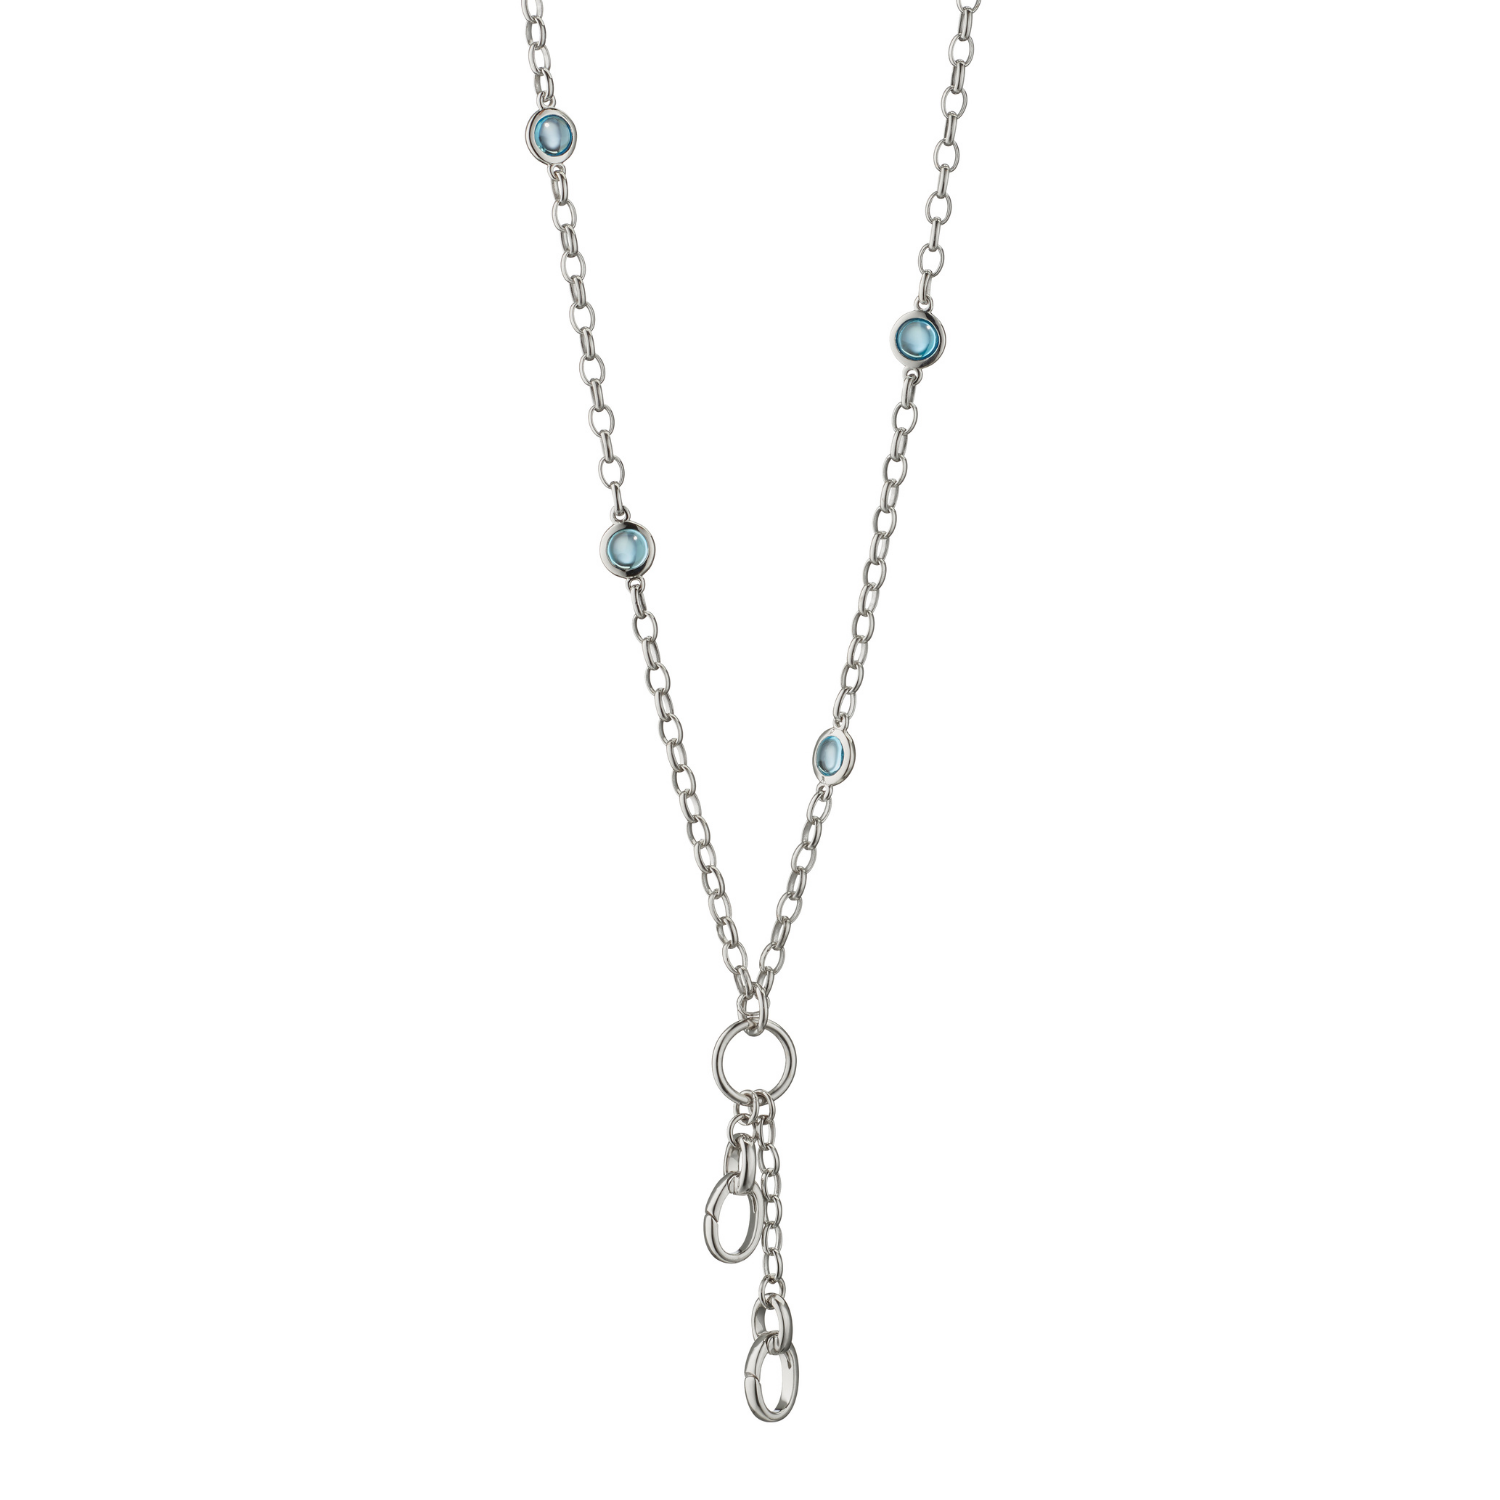 Monica Rich Kosann Silver Blue Topaz Necklace With Charm Enhancers